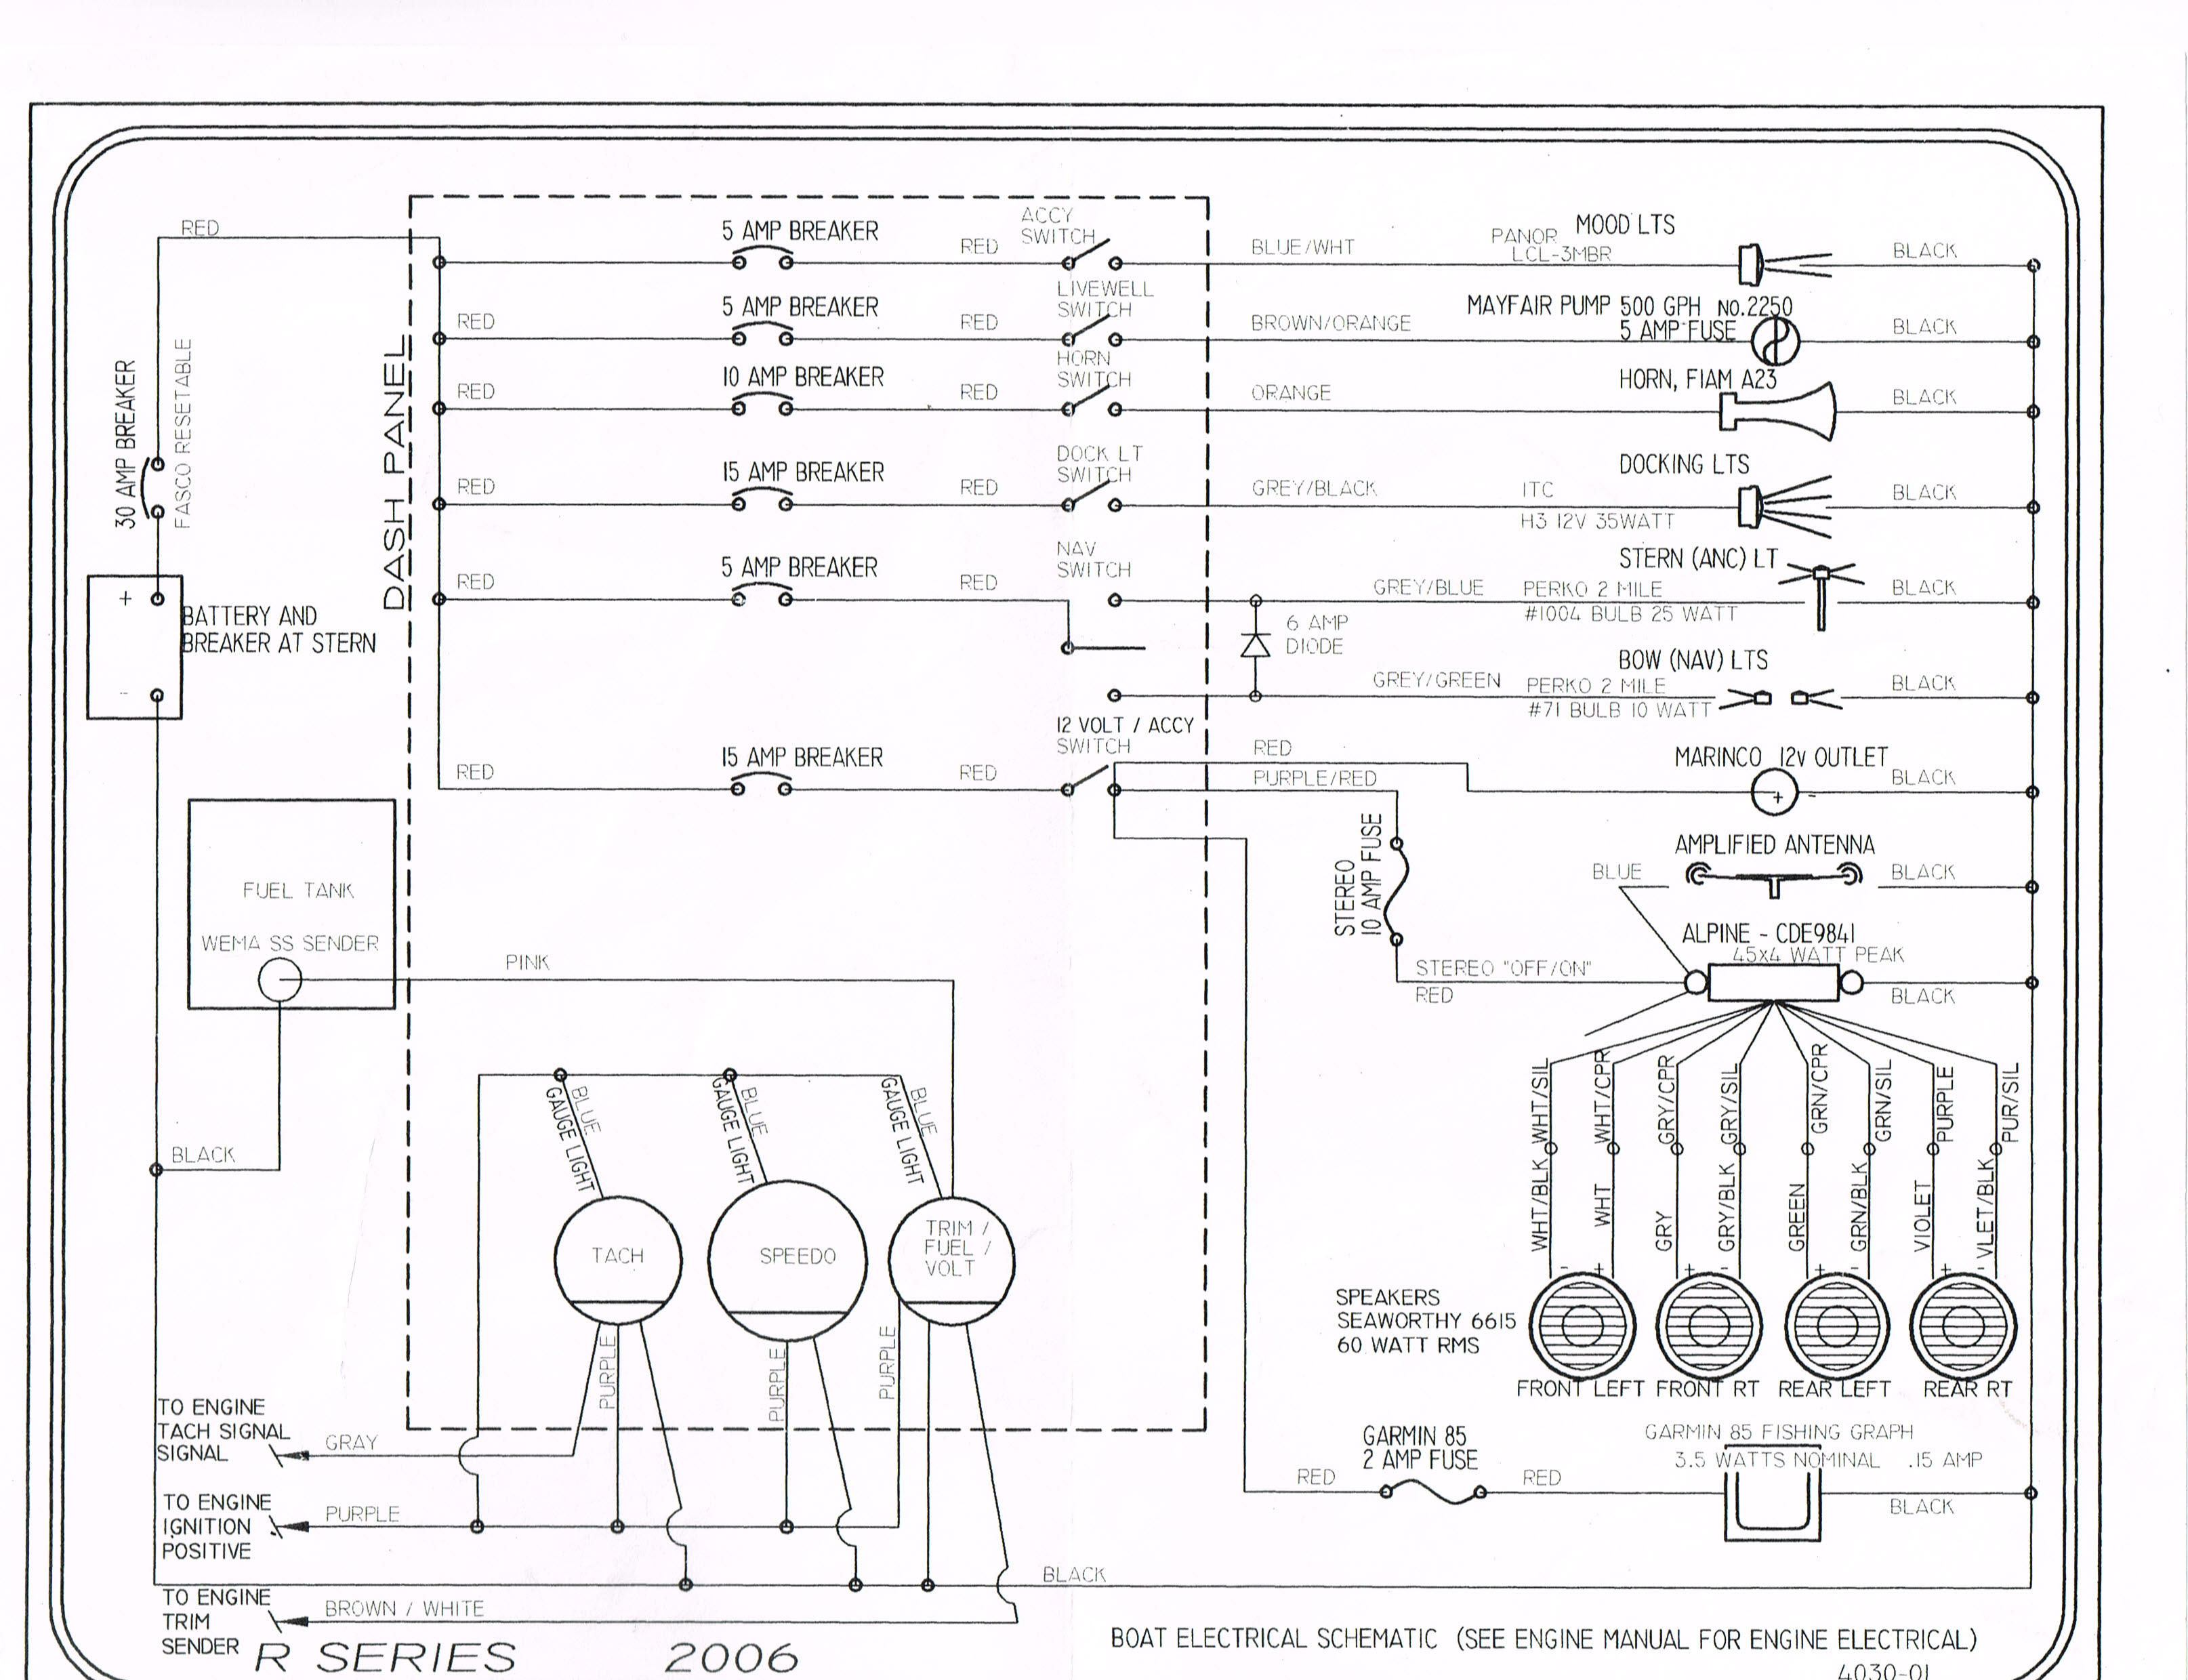 2007 wiring diagram club bennington bennington pontoon boat wiring diagram bennington wiring diagram [ 3229 x 2479 Pixel ]